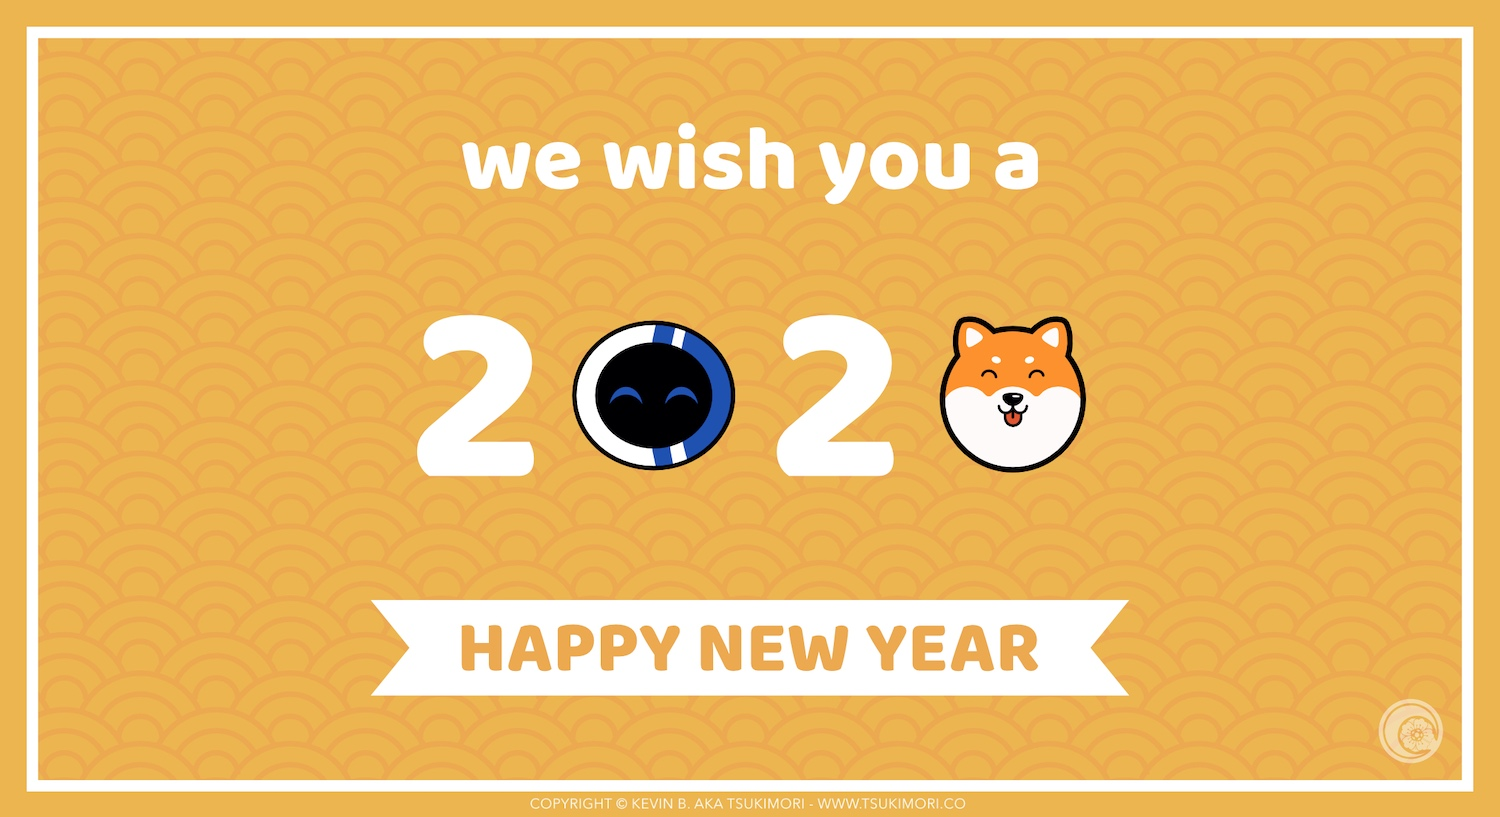 Happy New Year 2020 - Featured